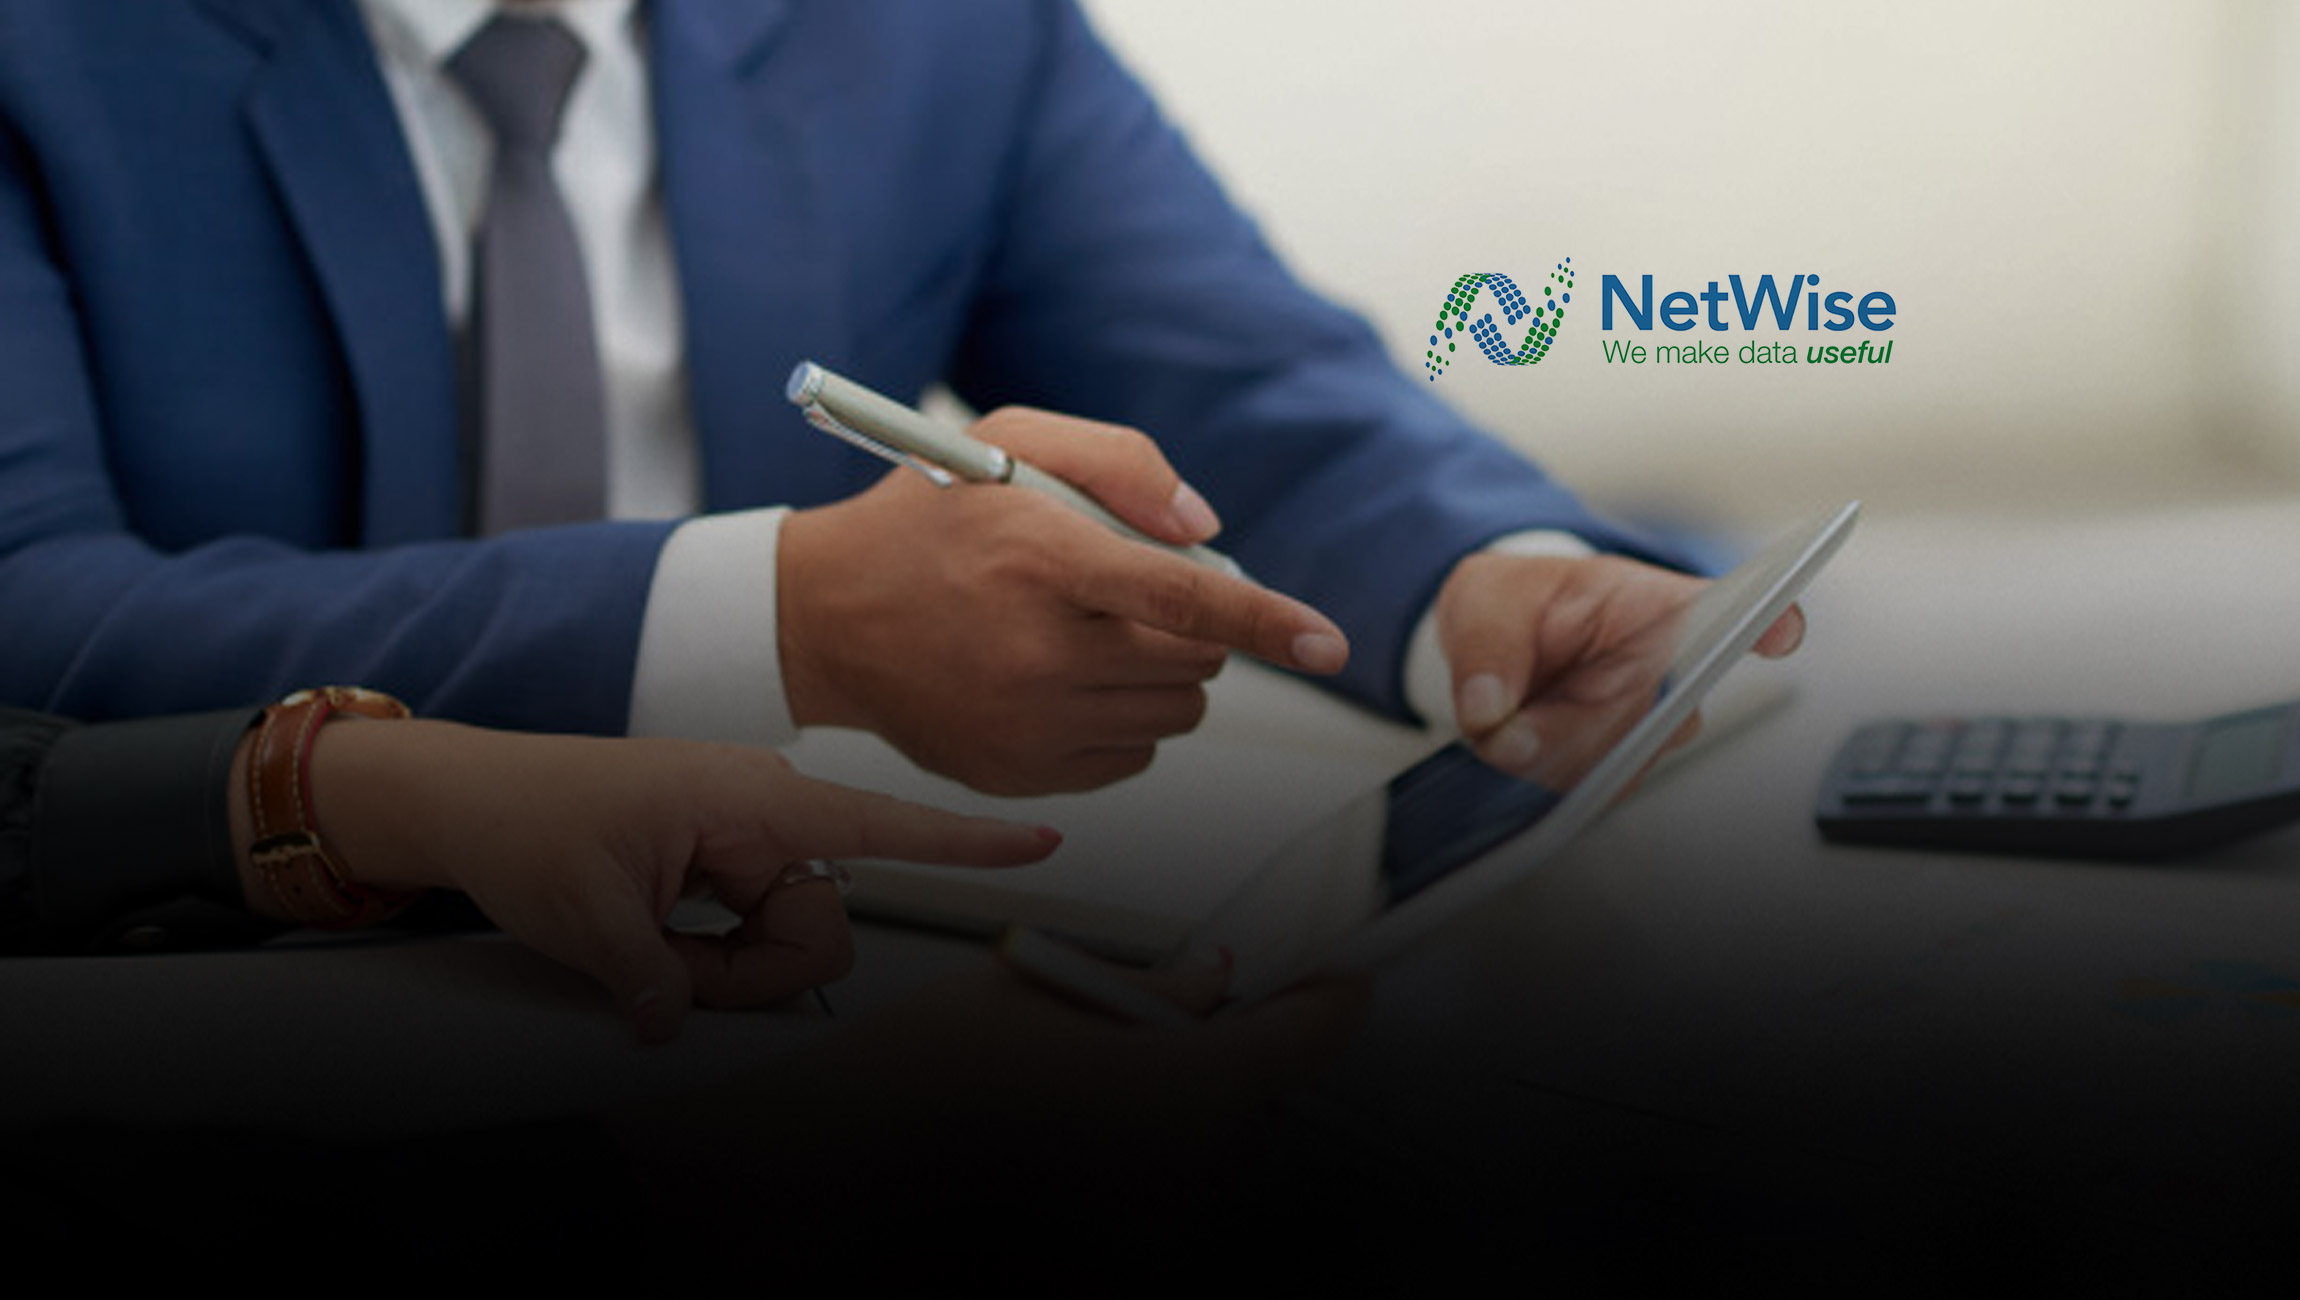 NetWise Partners With Union Resolute to Provide Highest-Quality B2B Data